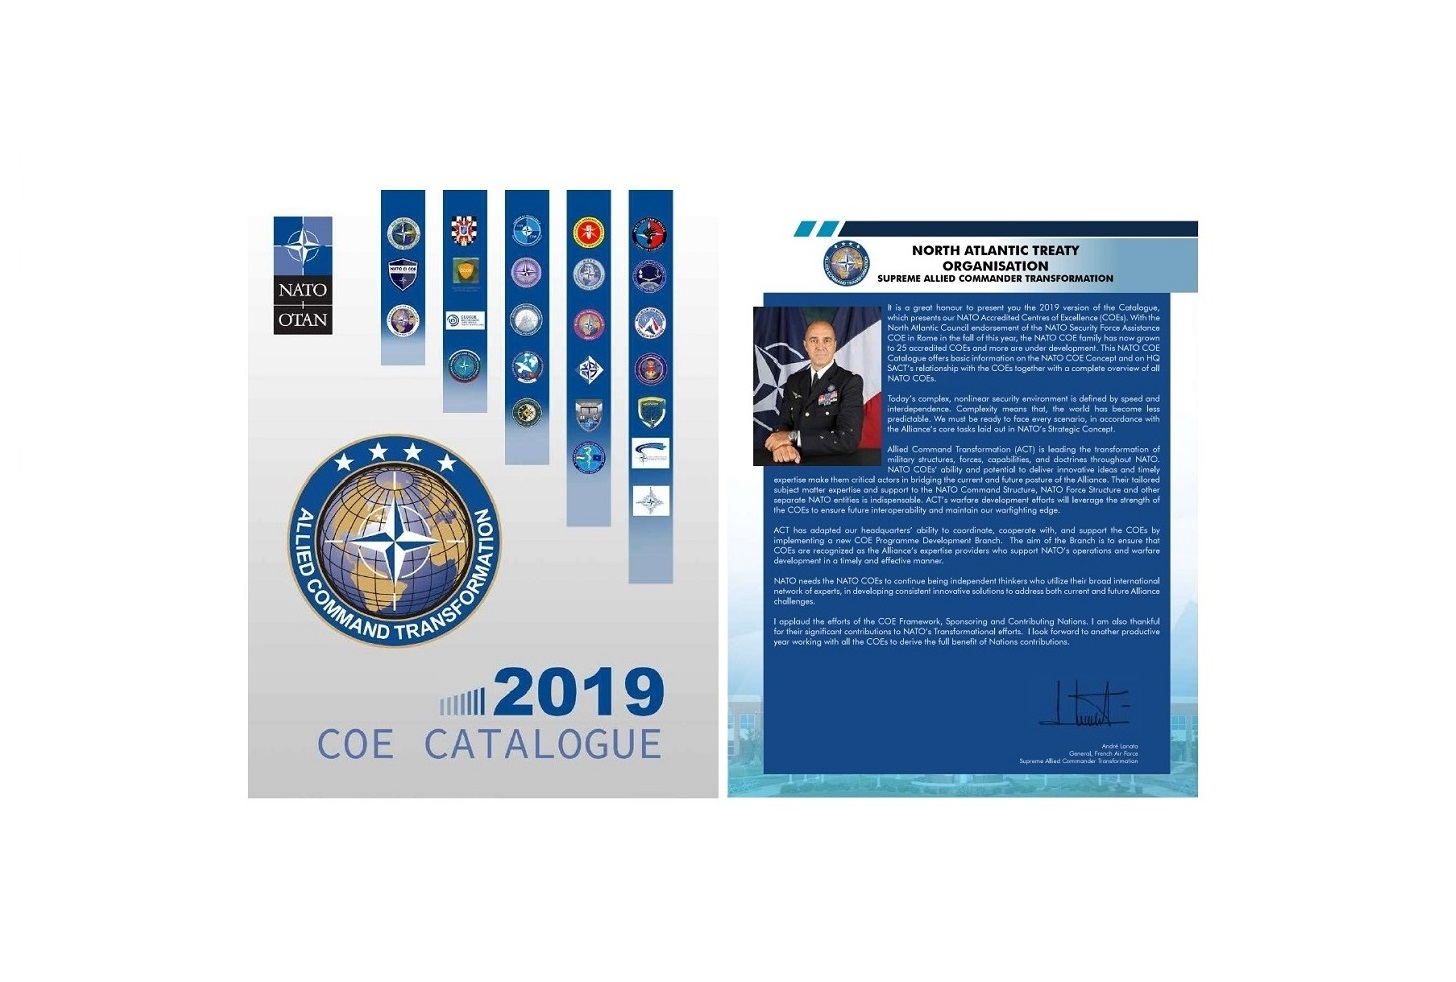 COE CATALOGUE 2019